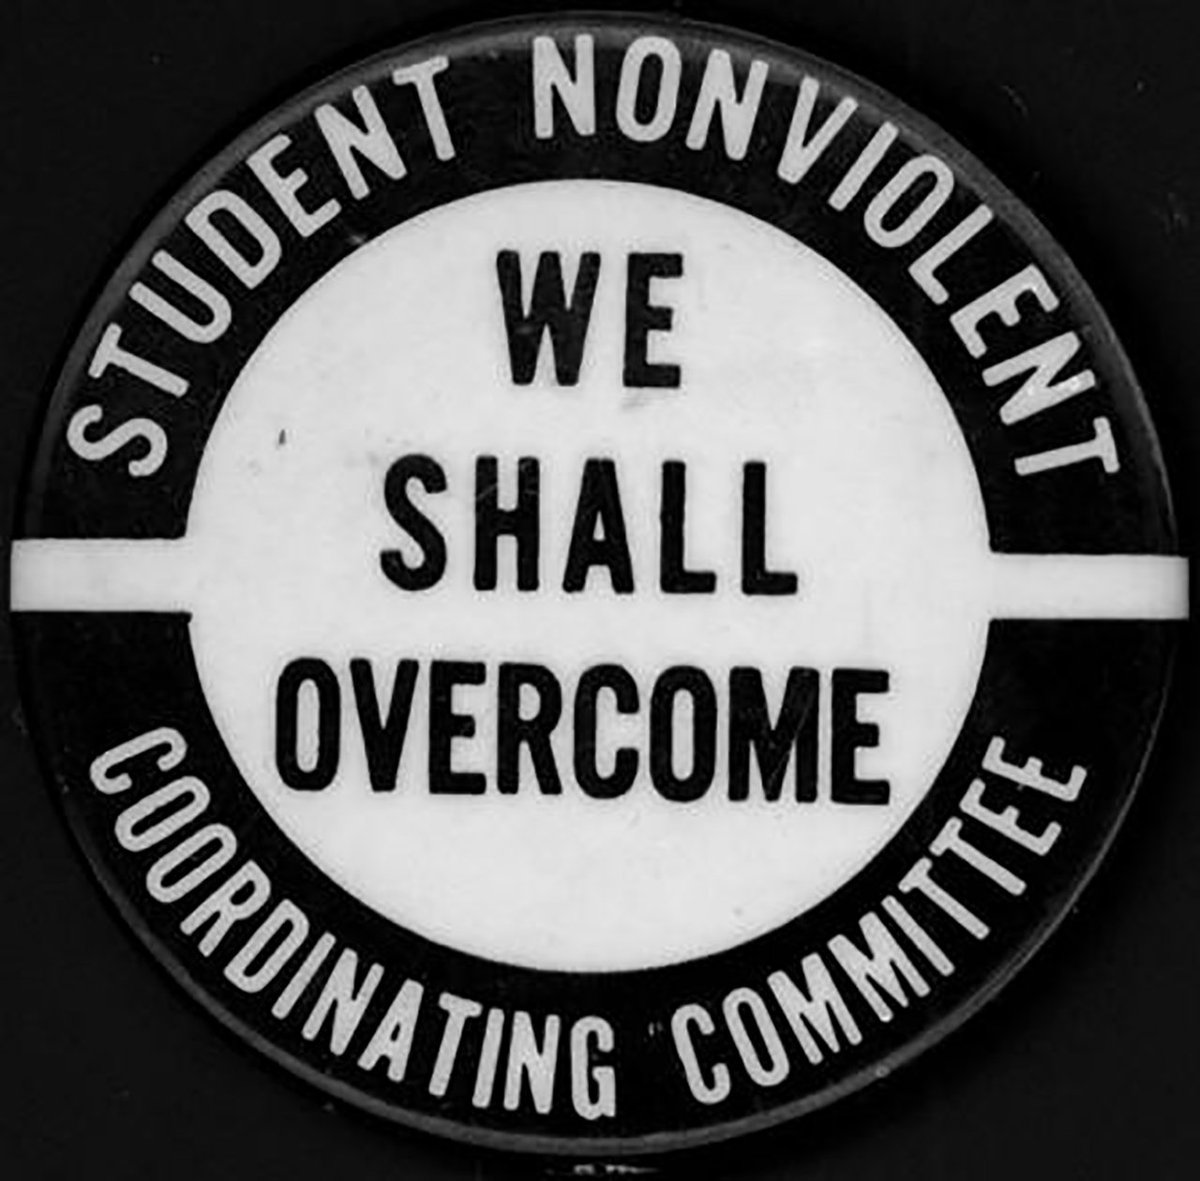 #Emory Libraries offers access to @ProQuest's History Vault, a searchable database of primary source materials that document the Civil Rights and Post-Civil Rights Movements. Image from the Civil Rights Digital Library. http://bit.ly/HistoryVault #SNCC #CivilRights